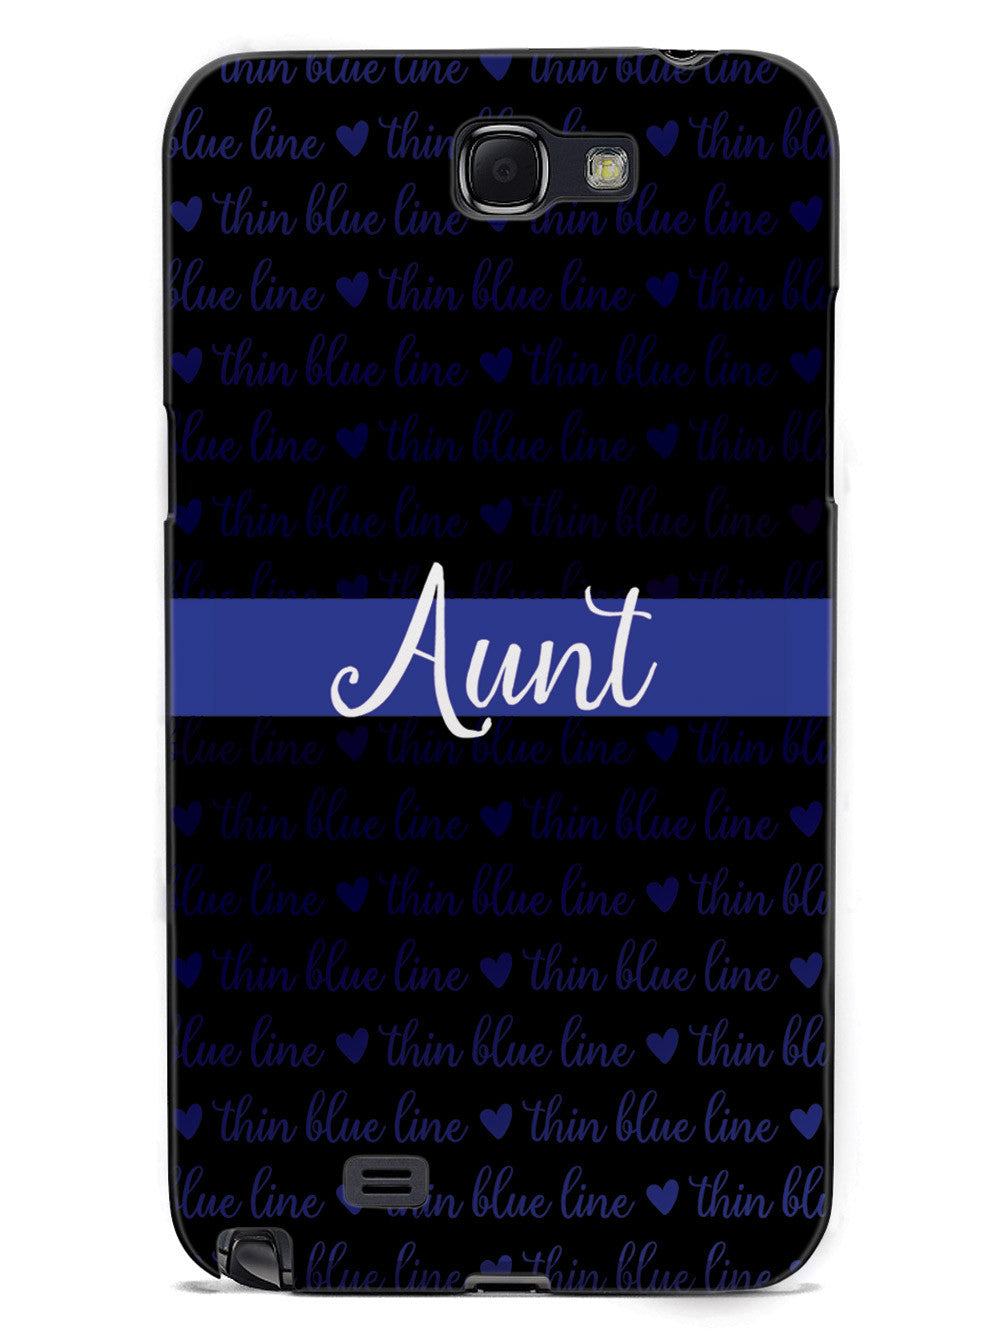 Thin Blue Line - Aunt Case